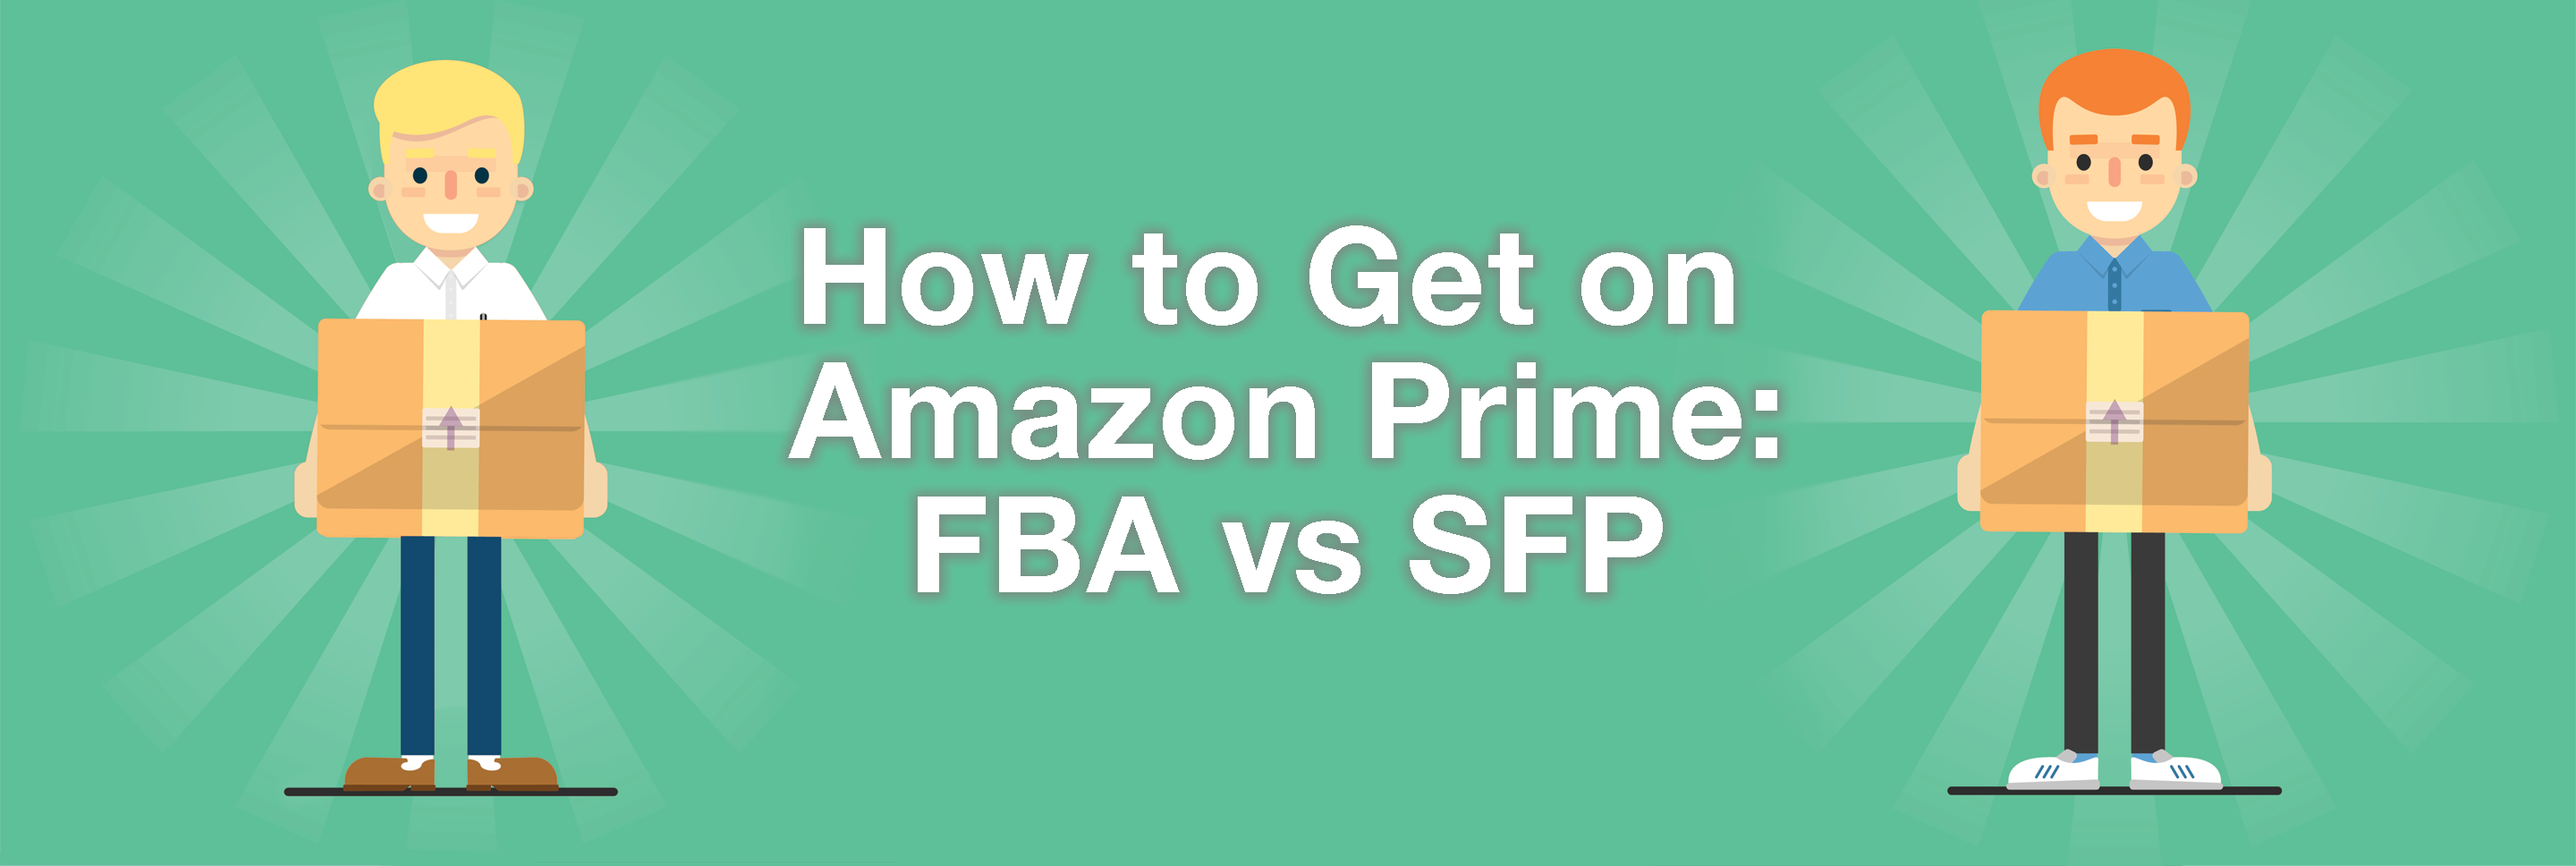 How to Get on Amazon Prime Header Image